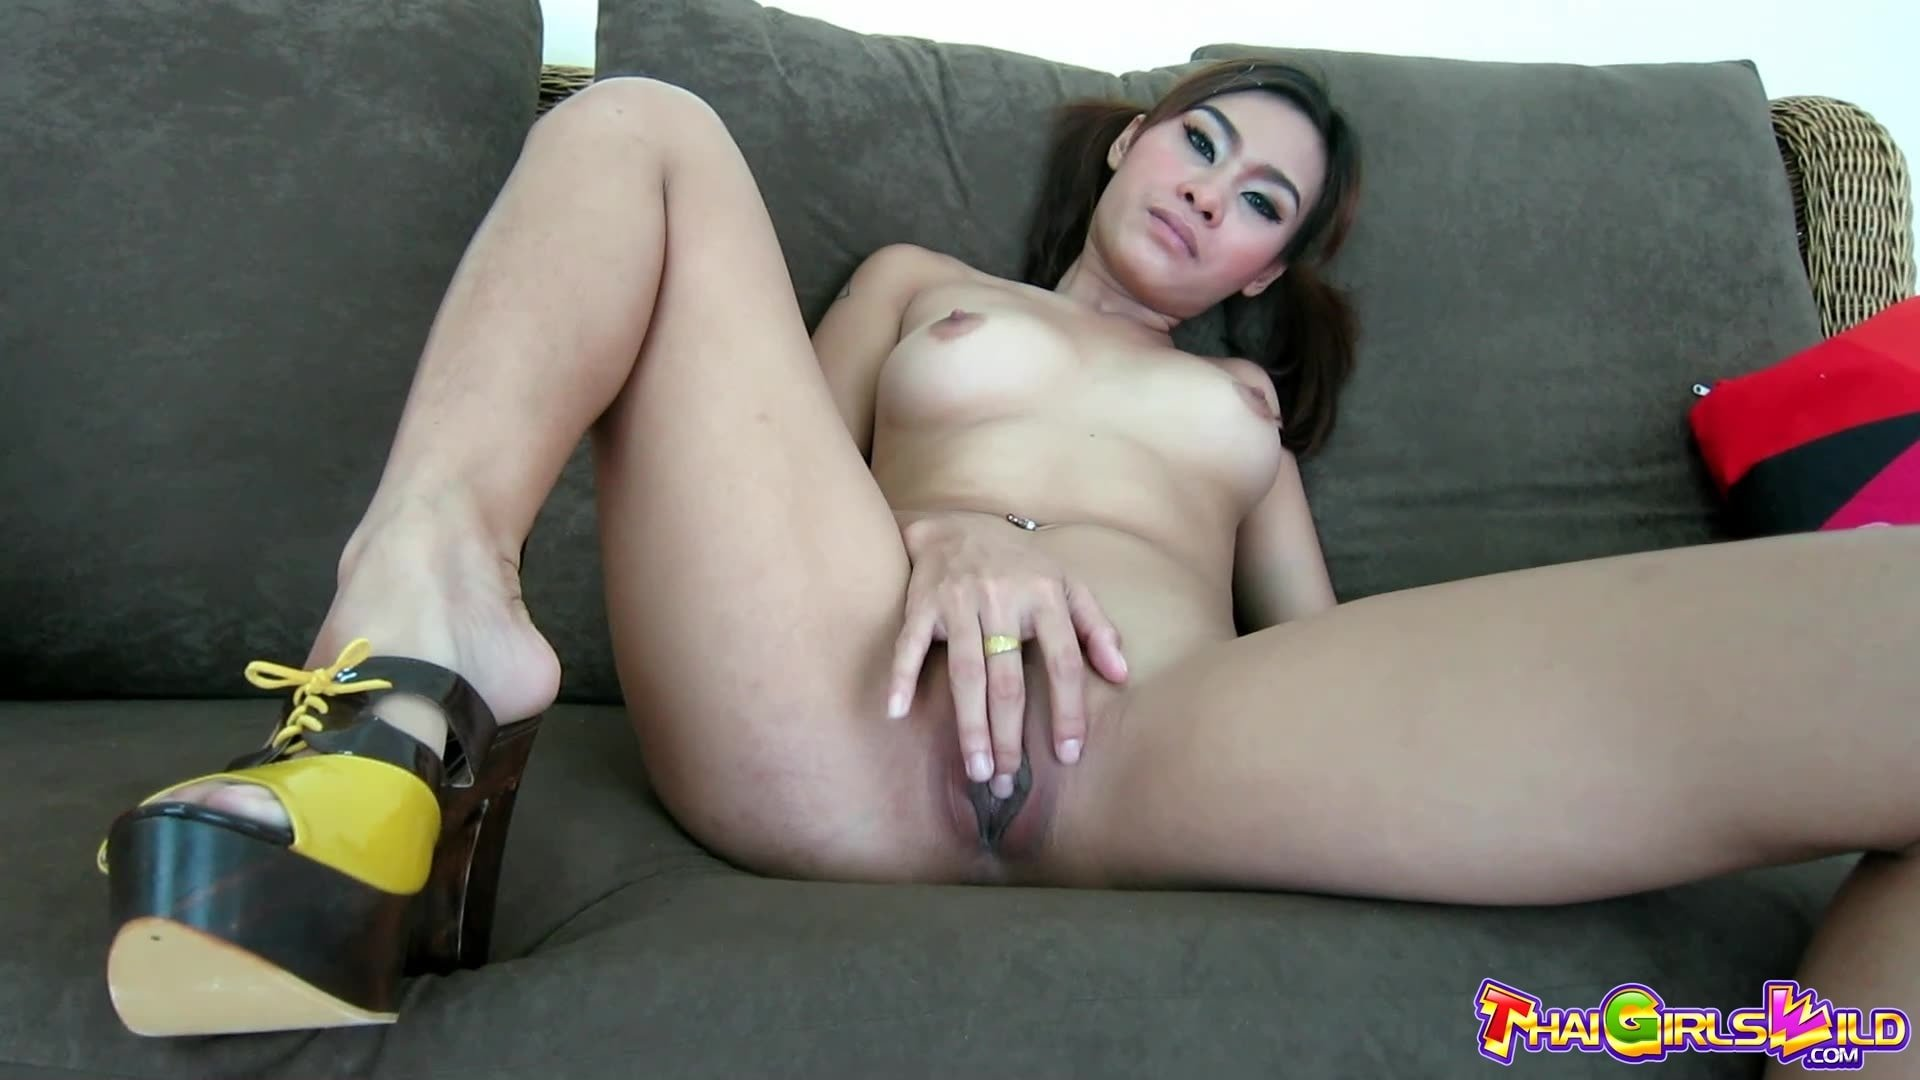 Hot sex vedios very Action Group Sex With (alaina chanel) Wild Naughty Party Girls clip-04